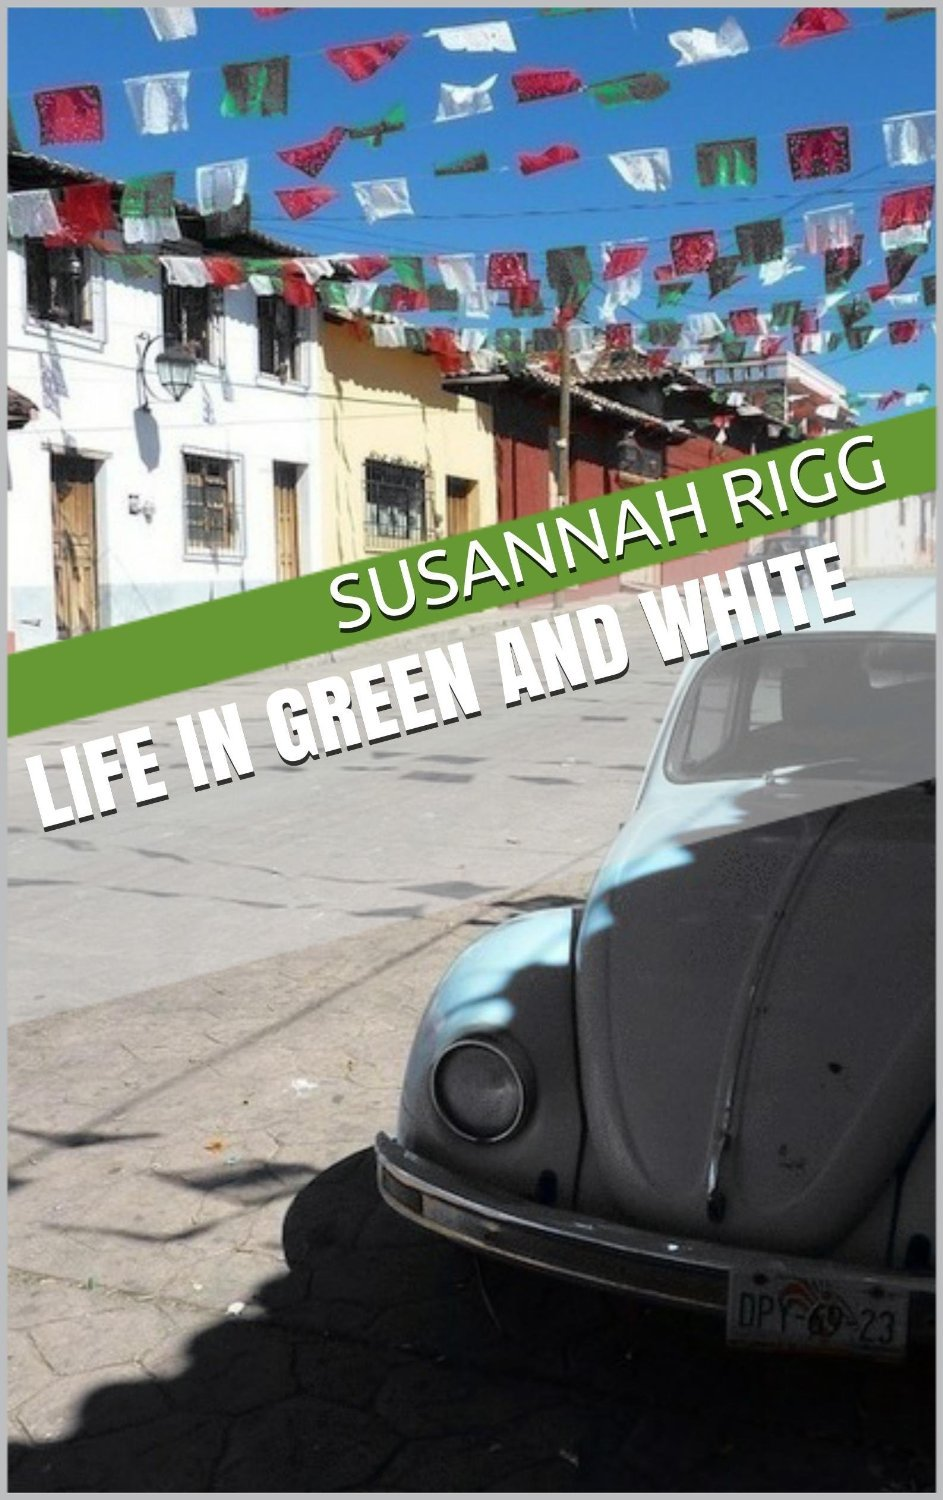 life_in_green_and_white